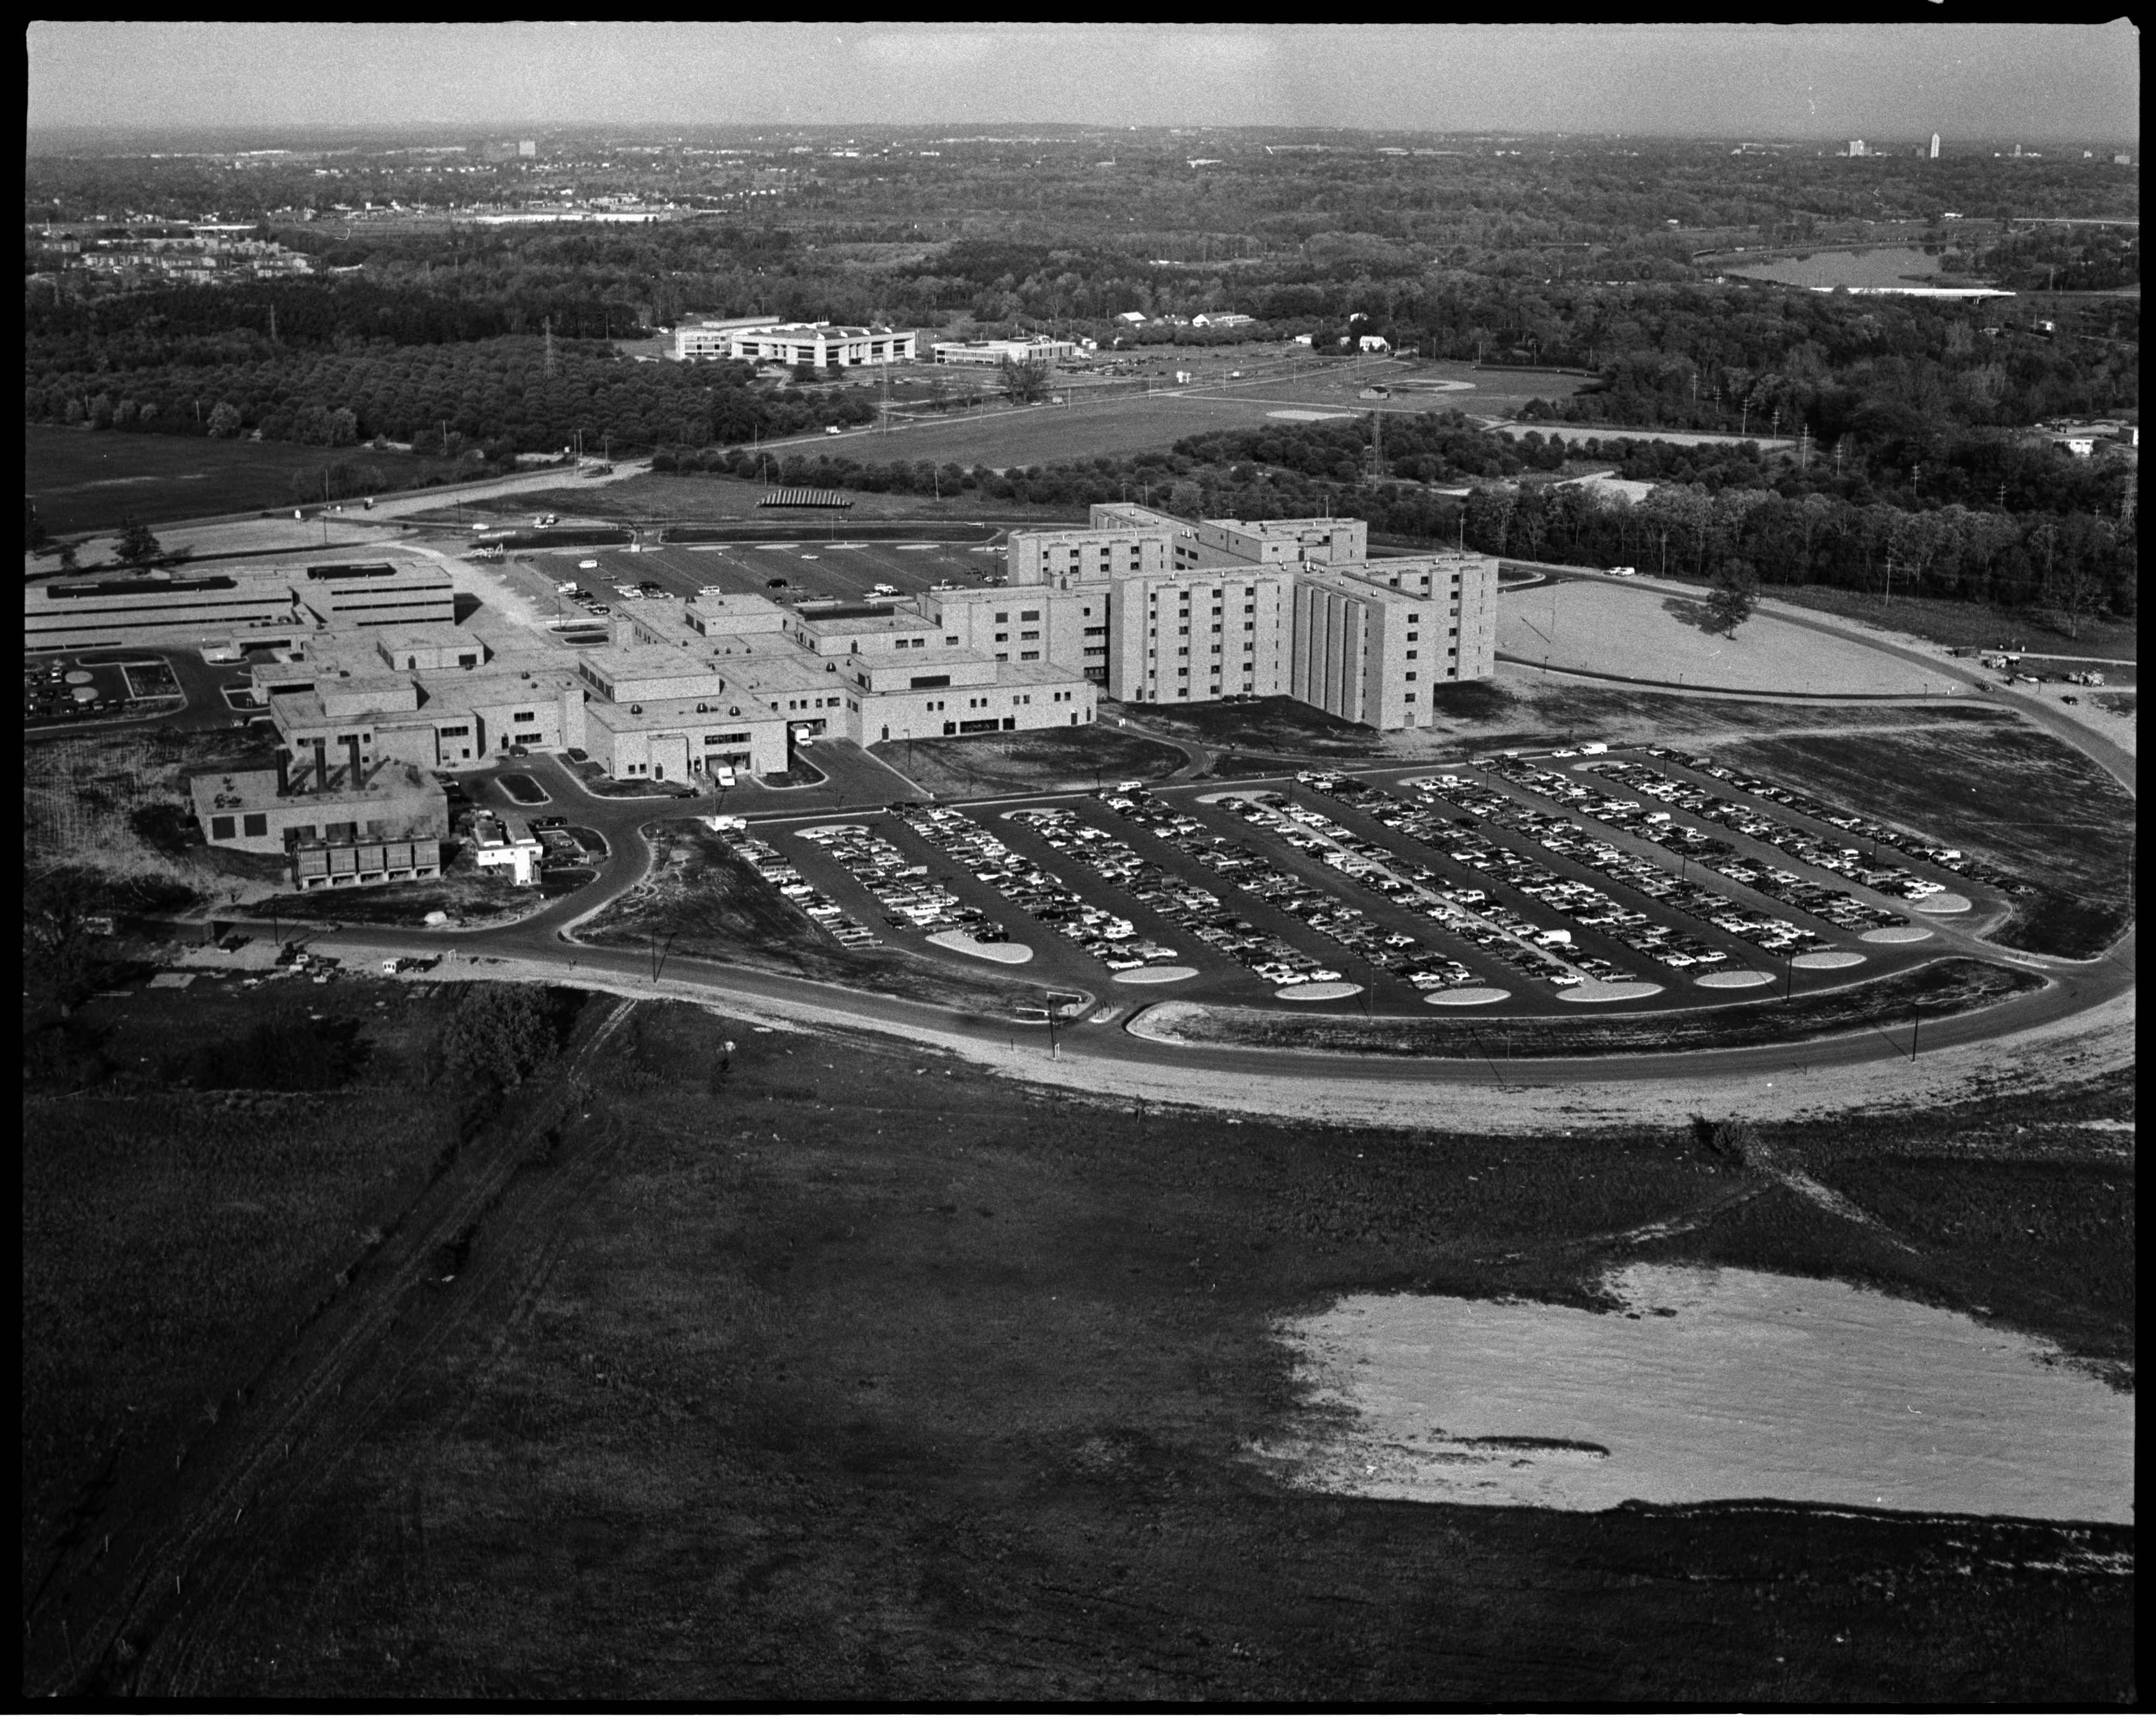 Aerial Photograph of St. Joseph Mercy Hospital, Circa 1977 image